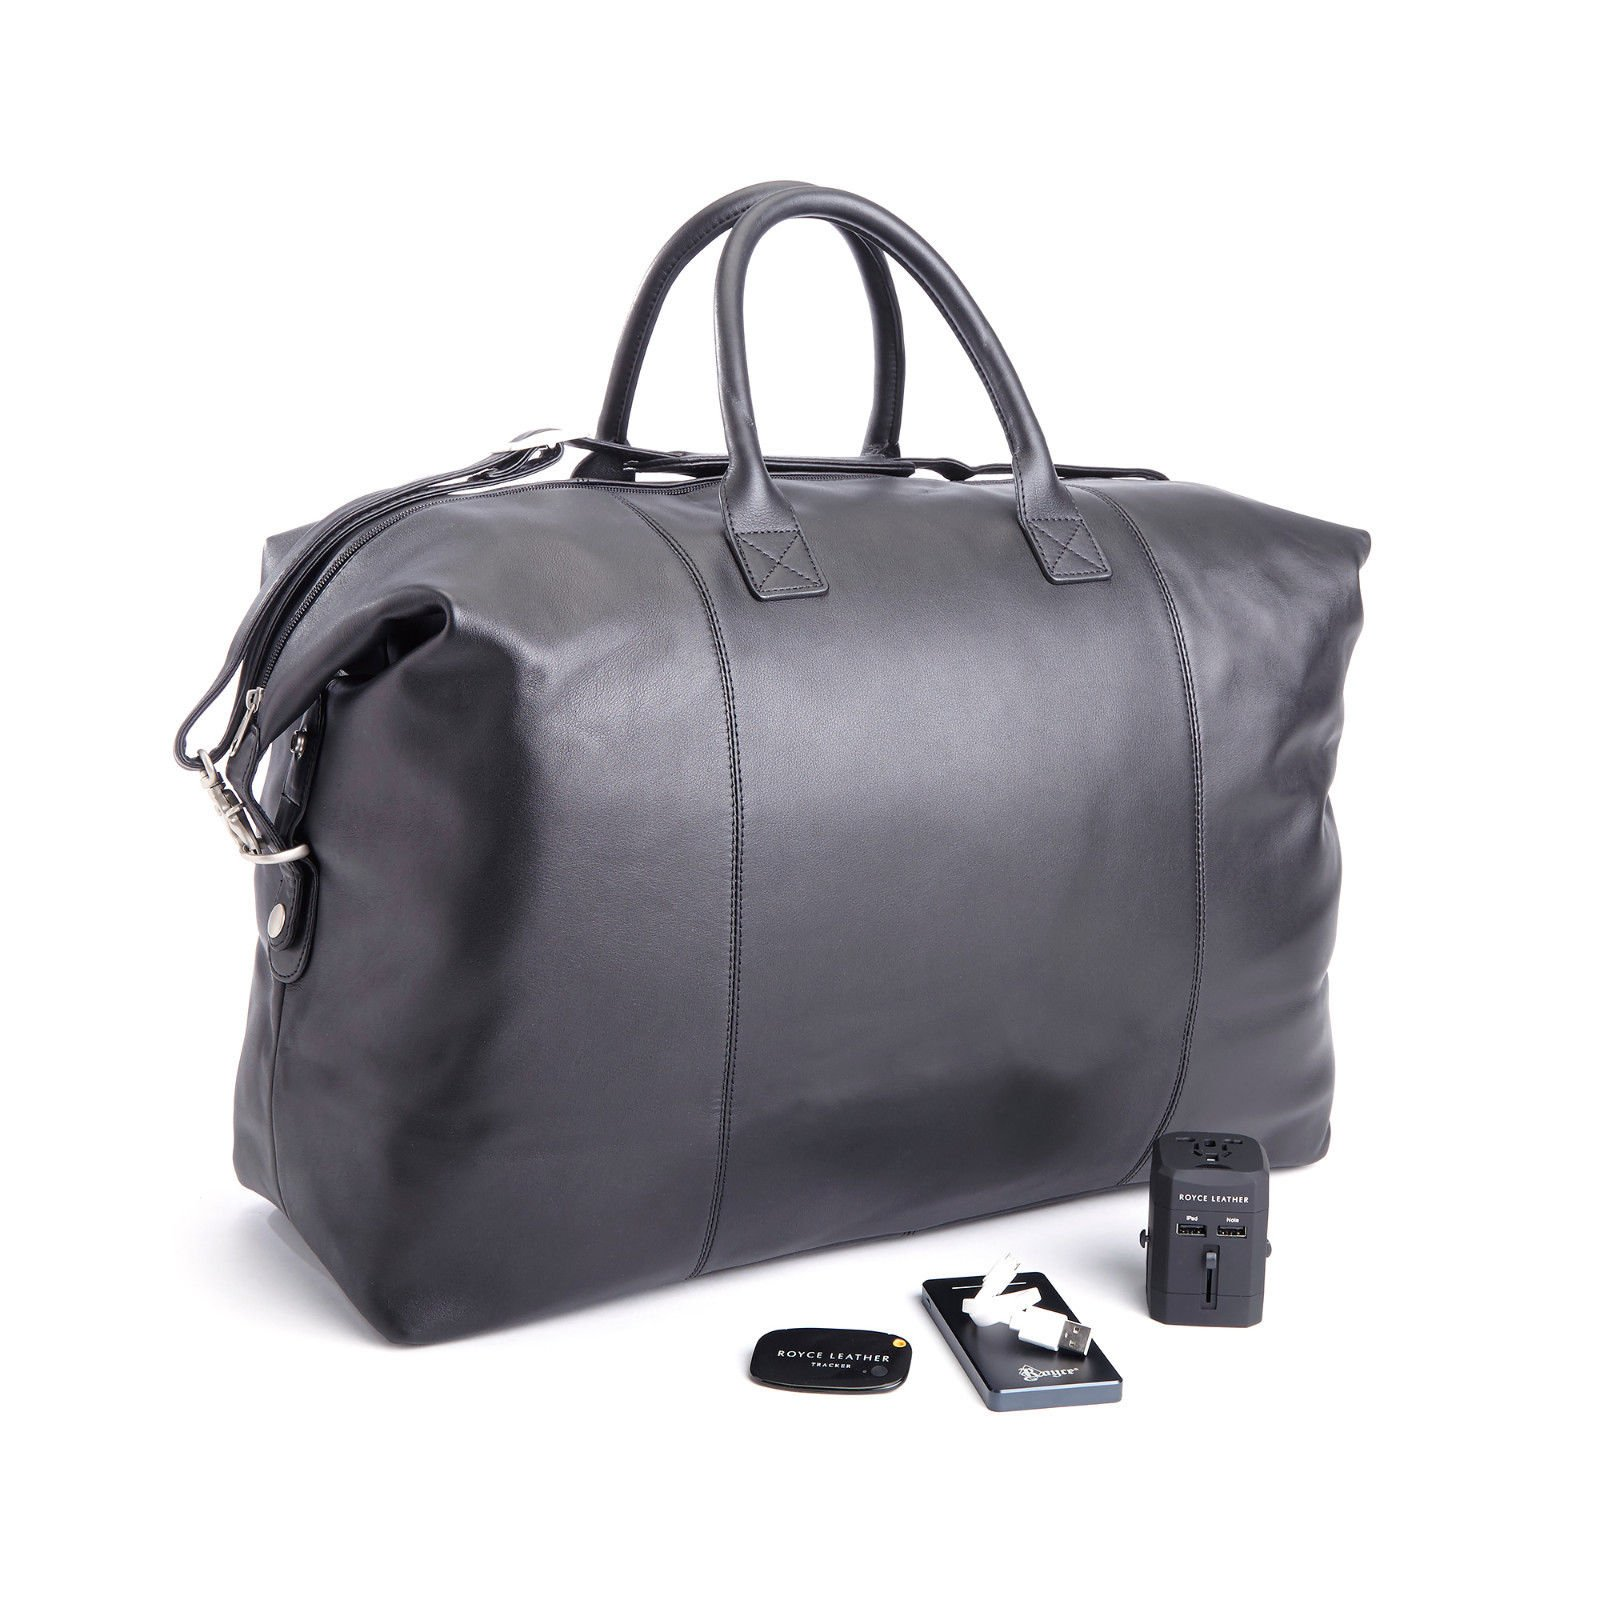 ROYCE Luxury Travel Set: Lightweight, Expandable Duffel Bag with Bluetooth-based Tracking Device for Locating Luggage, Portable Power Bank and International Adapter - Black